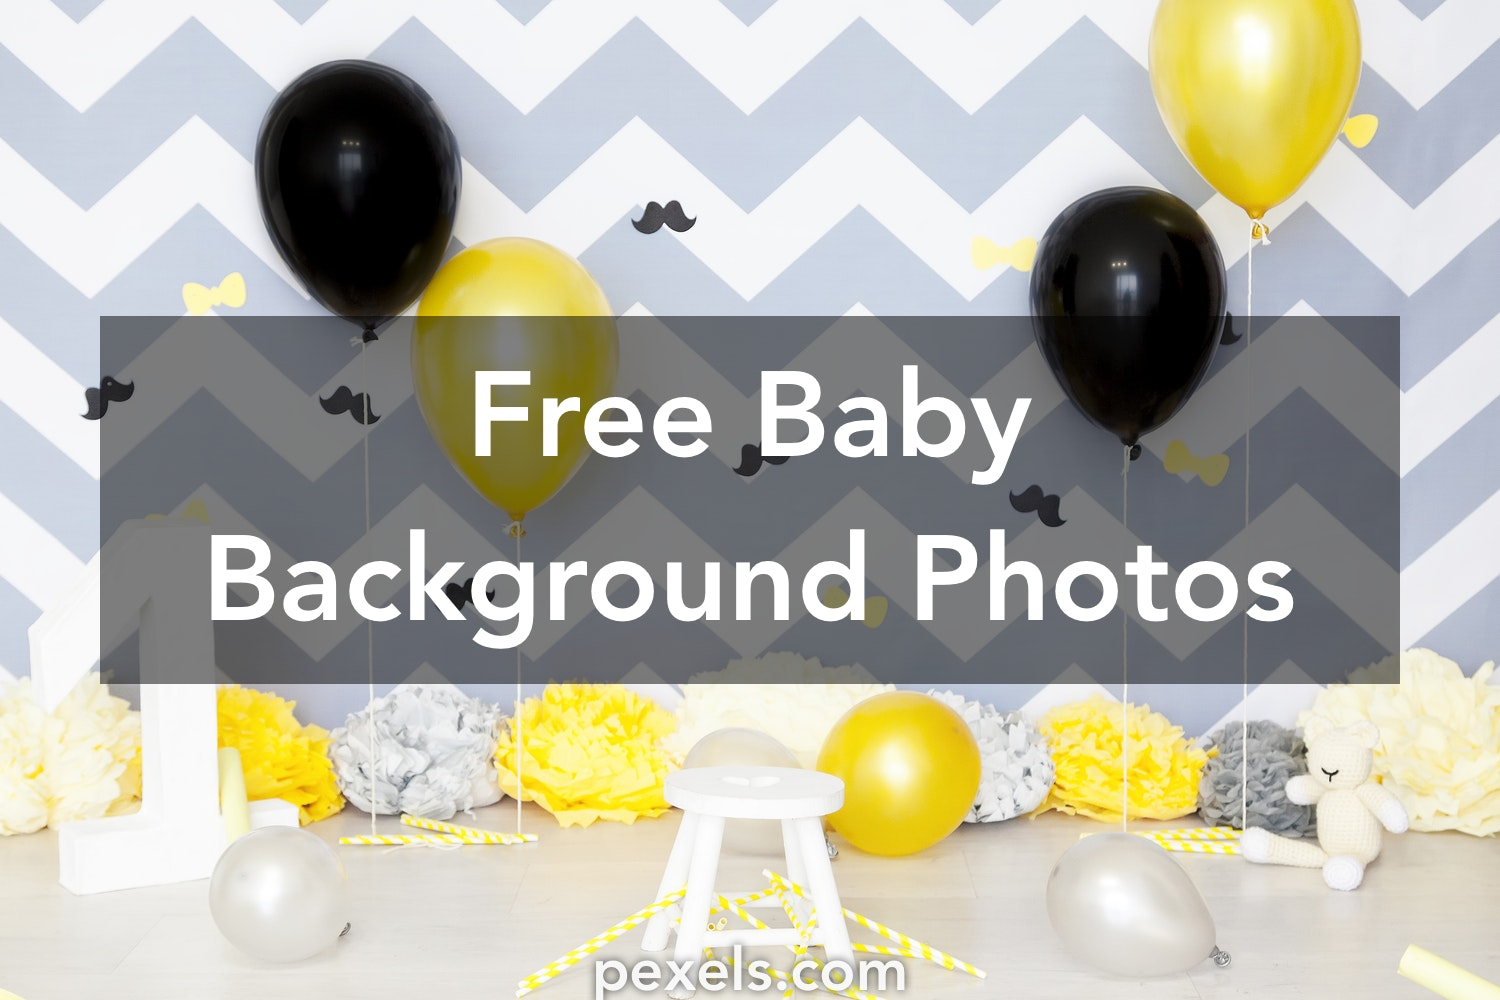 1000 amazing baby background photos · pexels · free stock photos